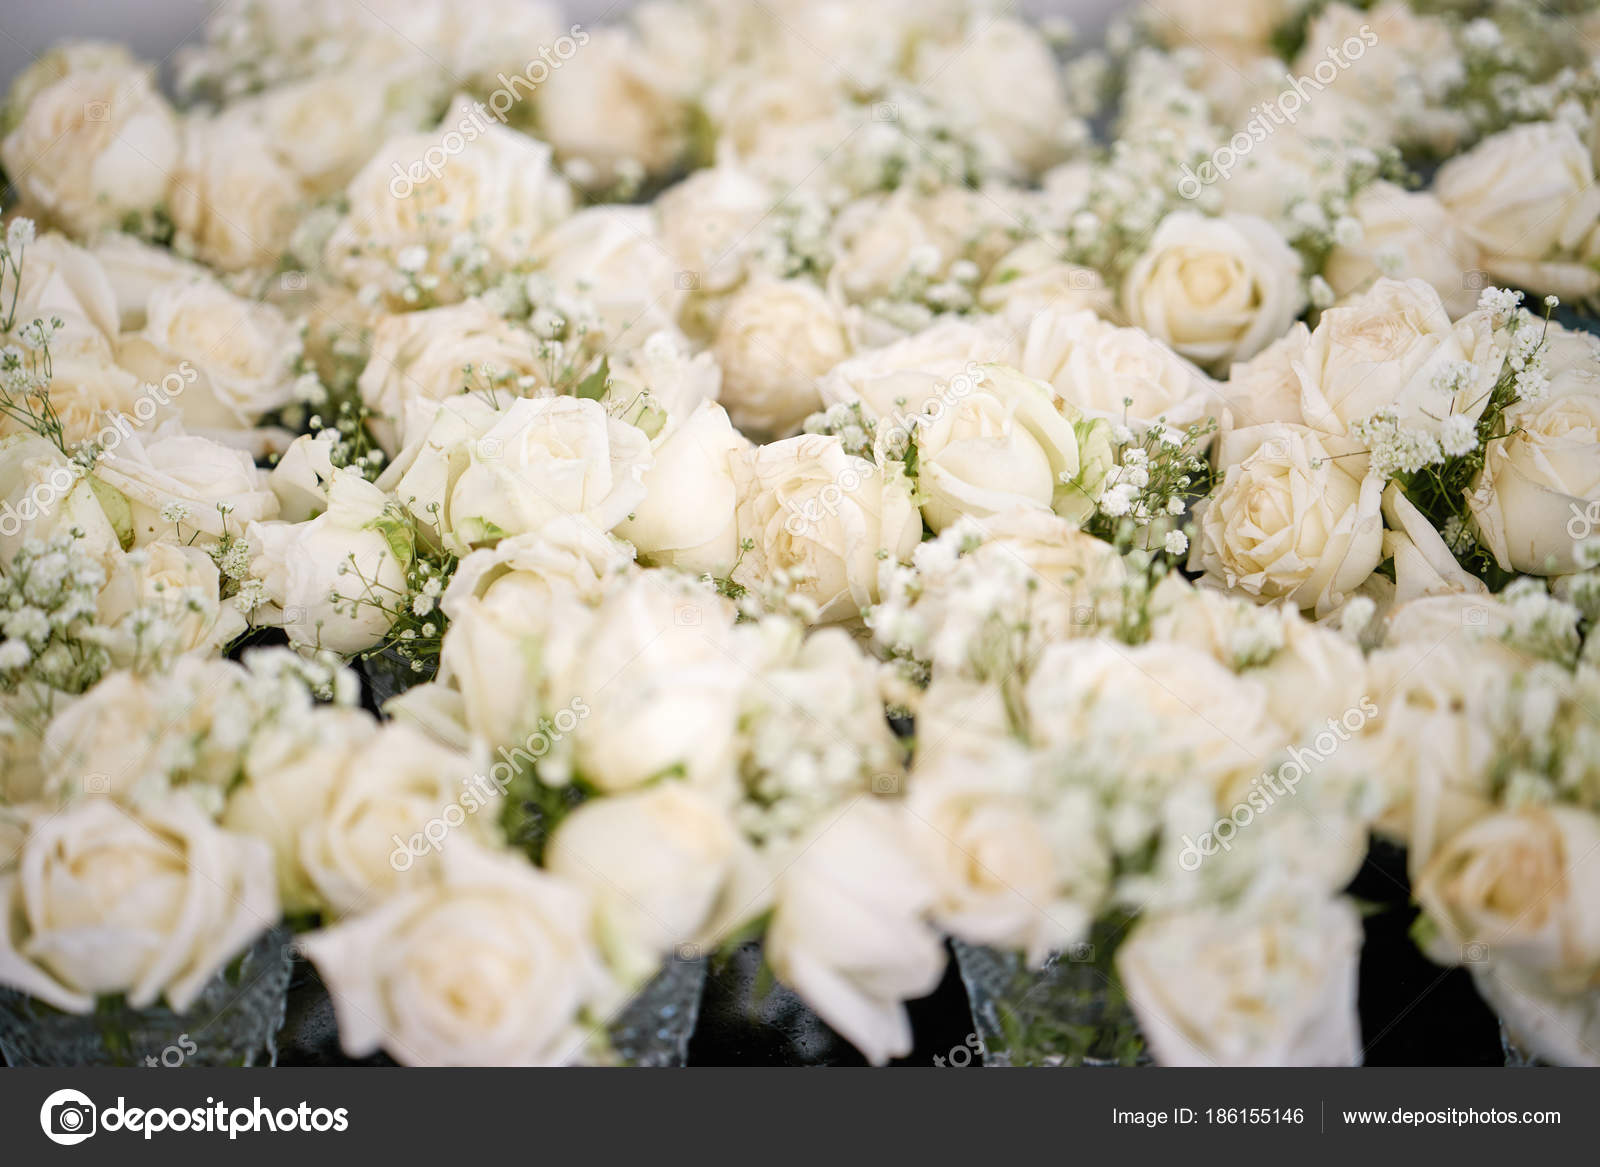 Bunch white cream roses baby breath gypsophila flowers floral a bunch of white and cream roses the babys breath gypsophila flowers floral for wedding venue decoration top view closed up photo by mrseksan mightylinksfo